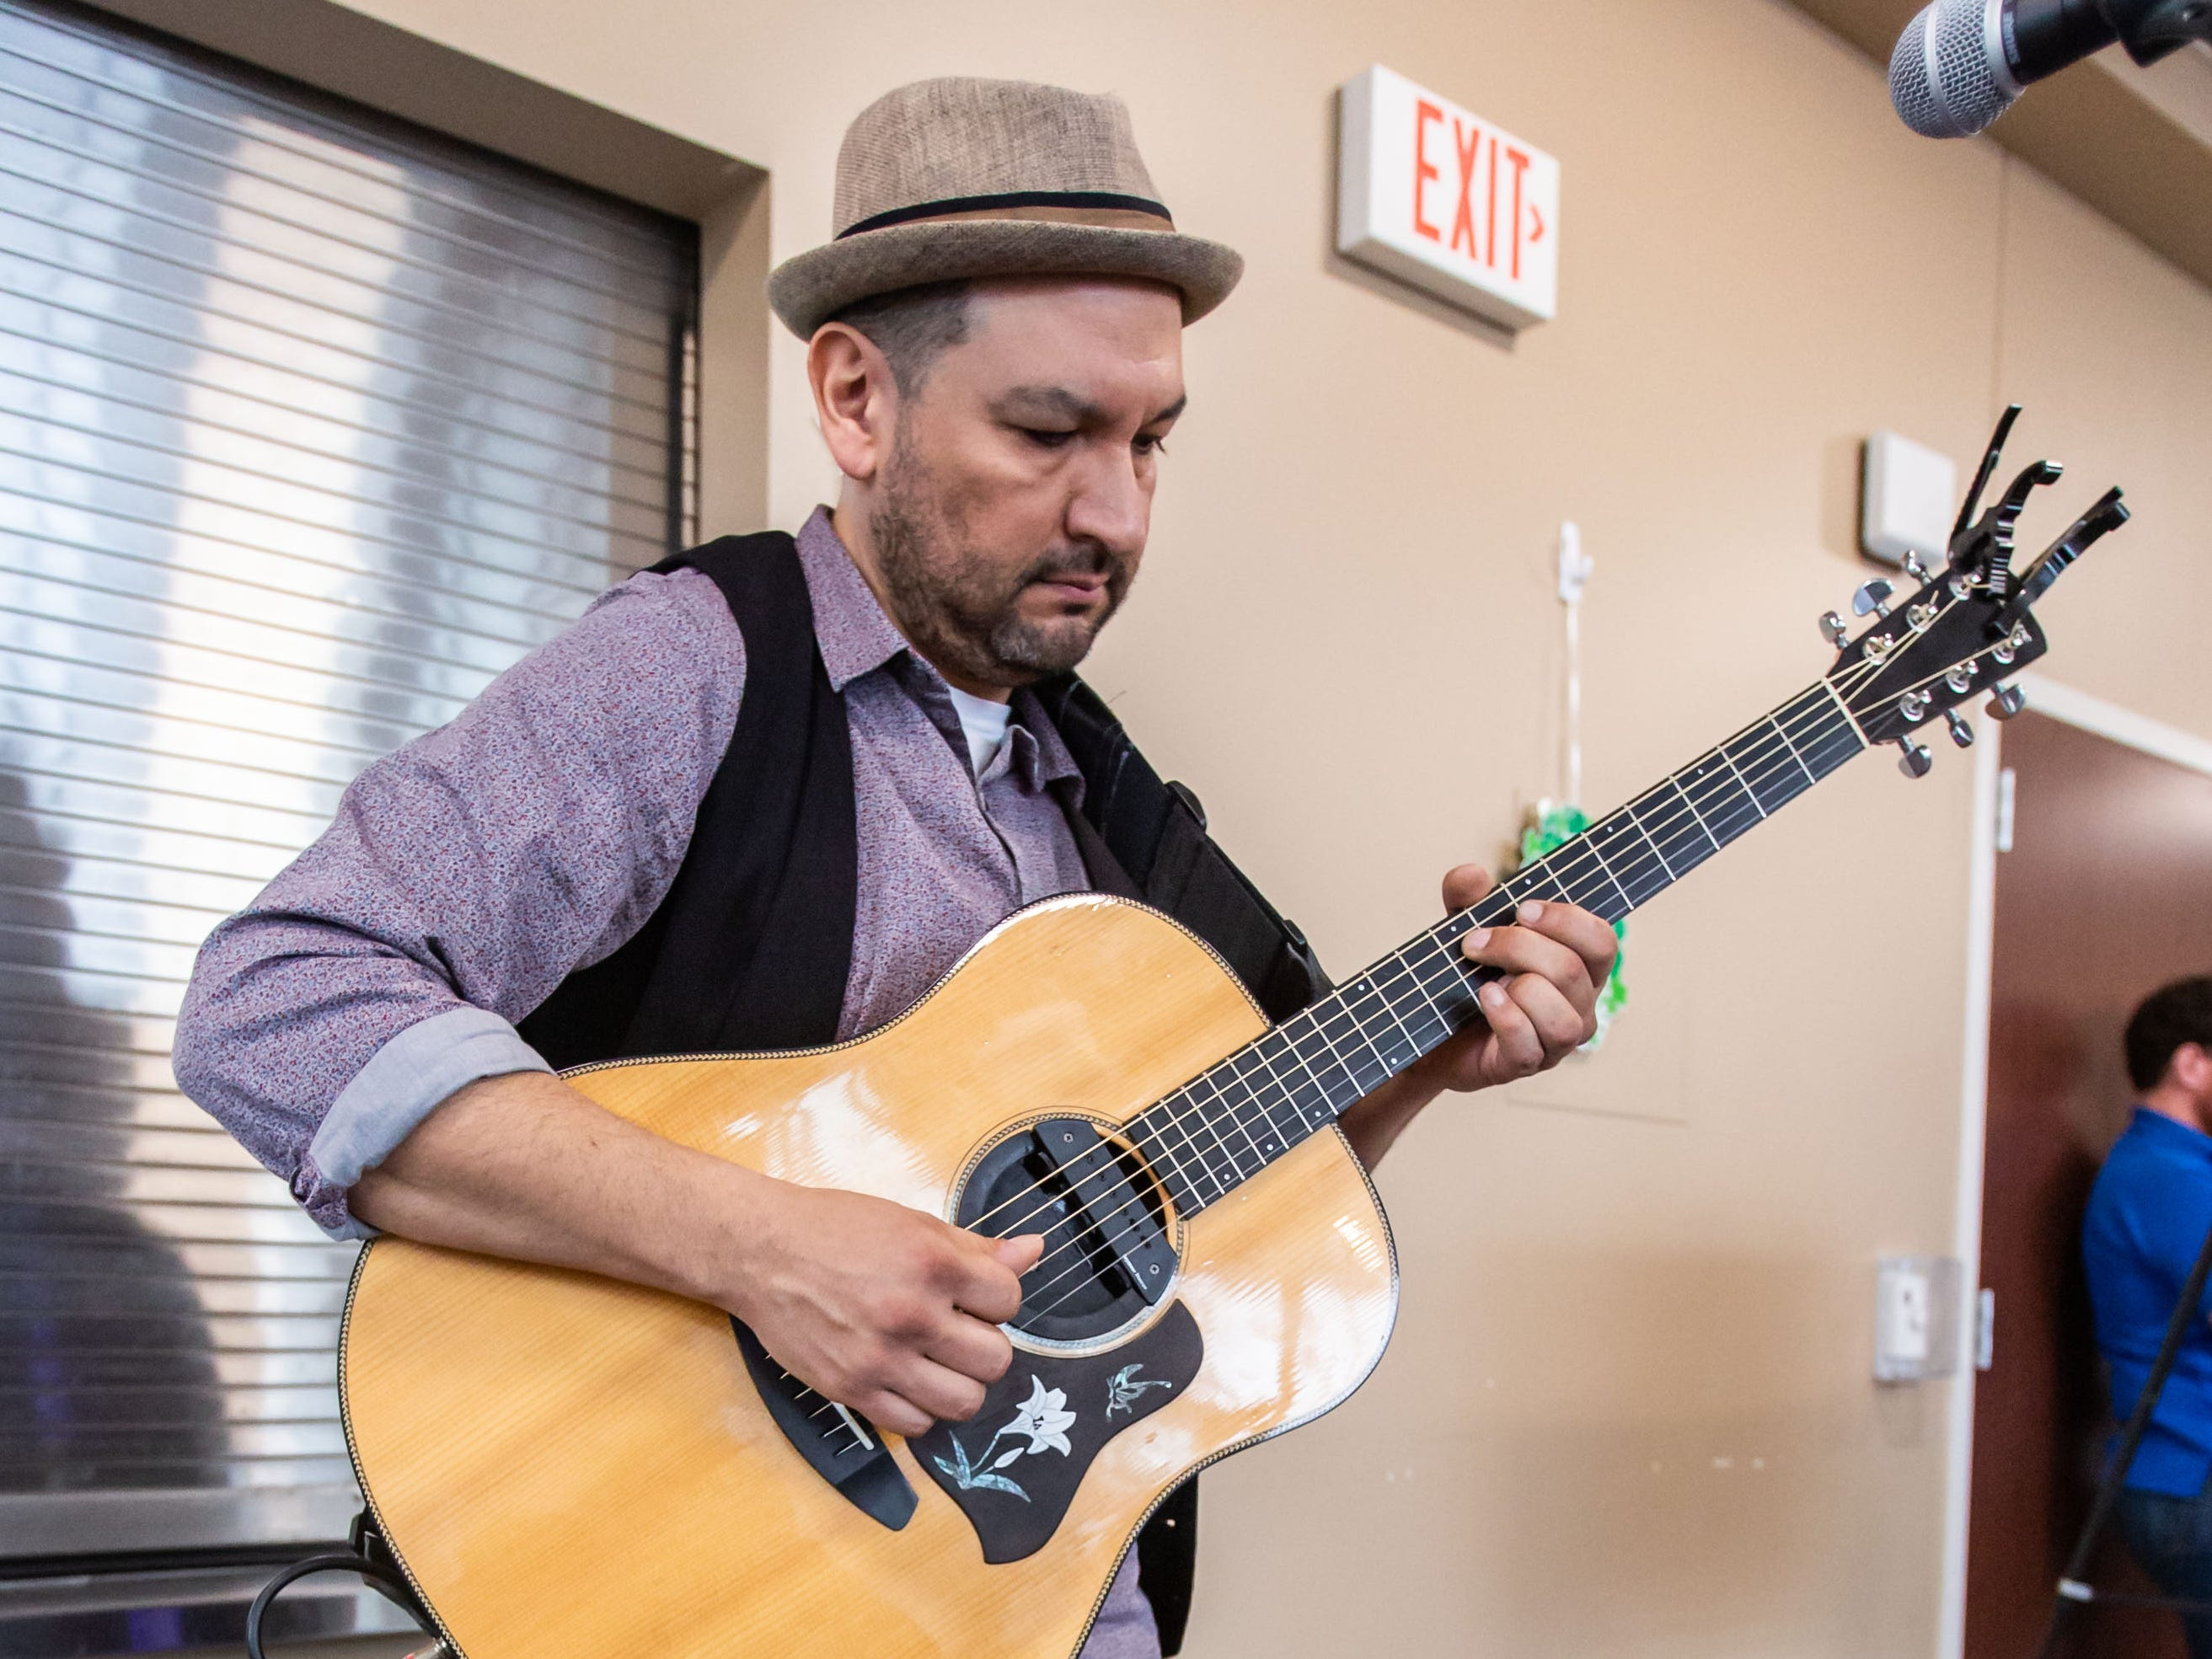 Singer songwriter Joey Leal of Waukesha entertains visitors during the Winter Farmers Market at the Sussex Civic Center on Sunday, March 10, 2019.